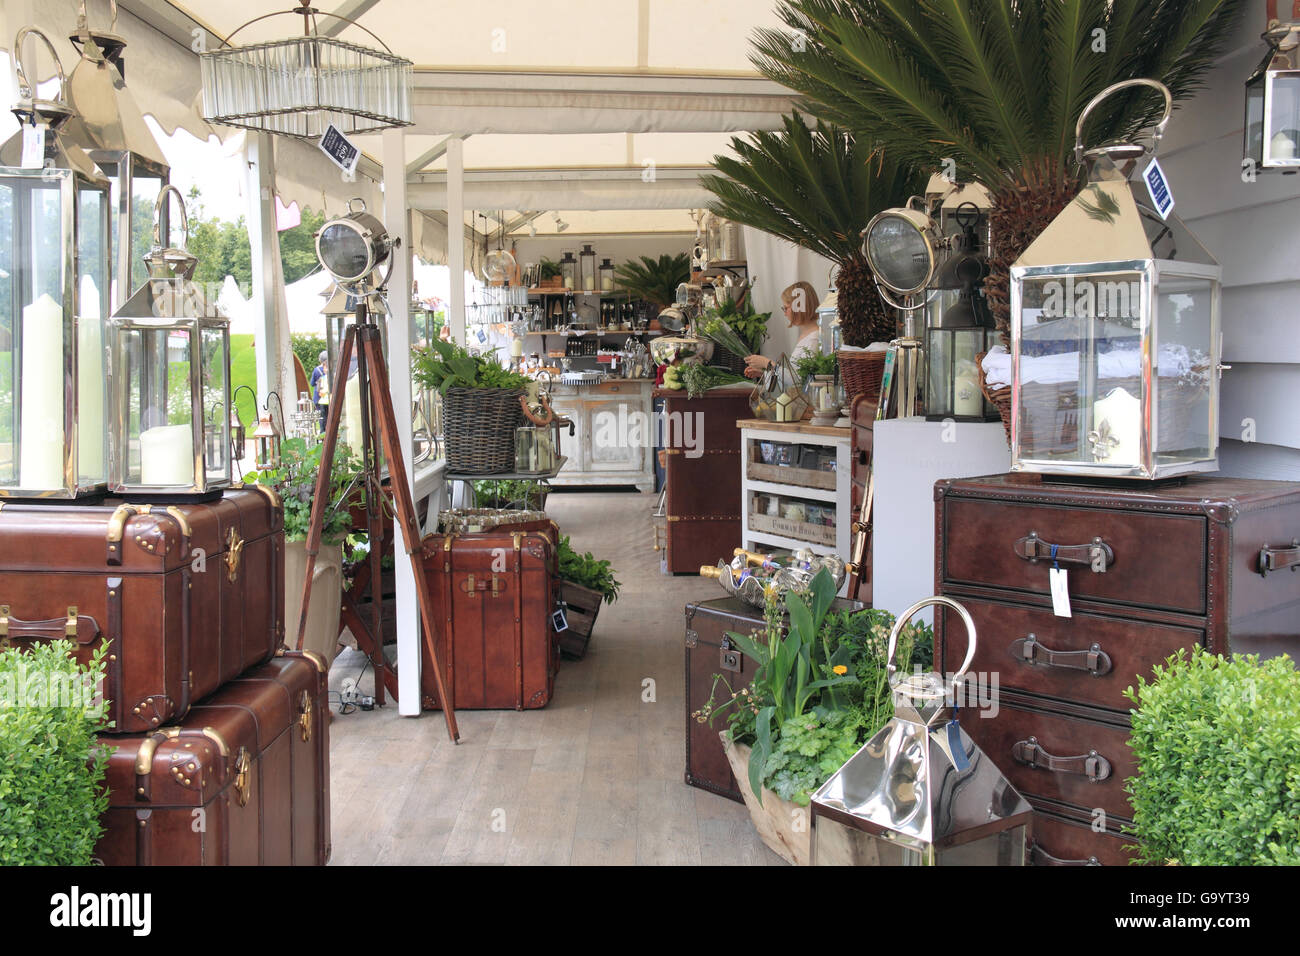 Garden Lantern Co by Culinary Concepts. Trade Exhibitor. RHS Hampton Court Palace Flower Show, London, England, - Stock Image